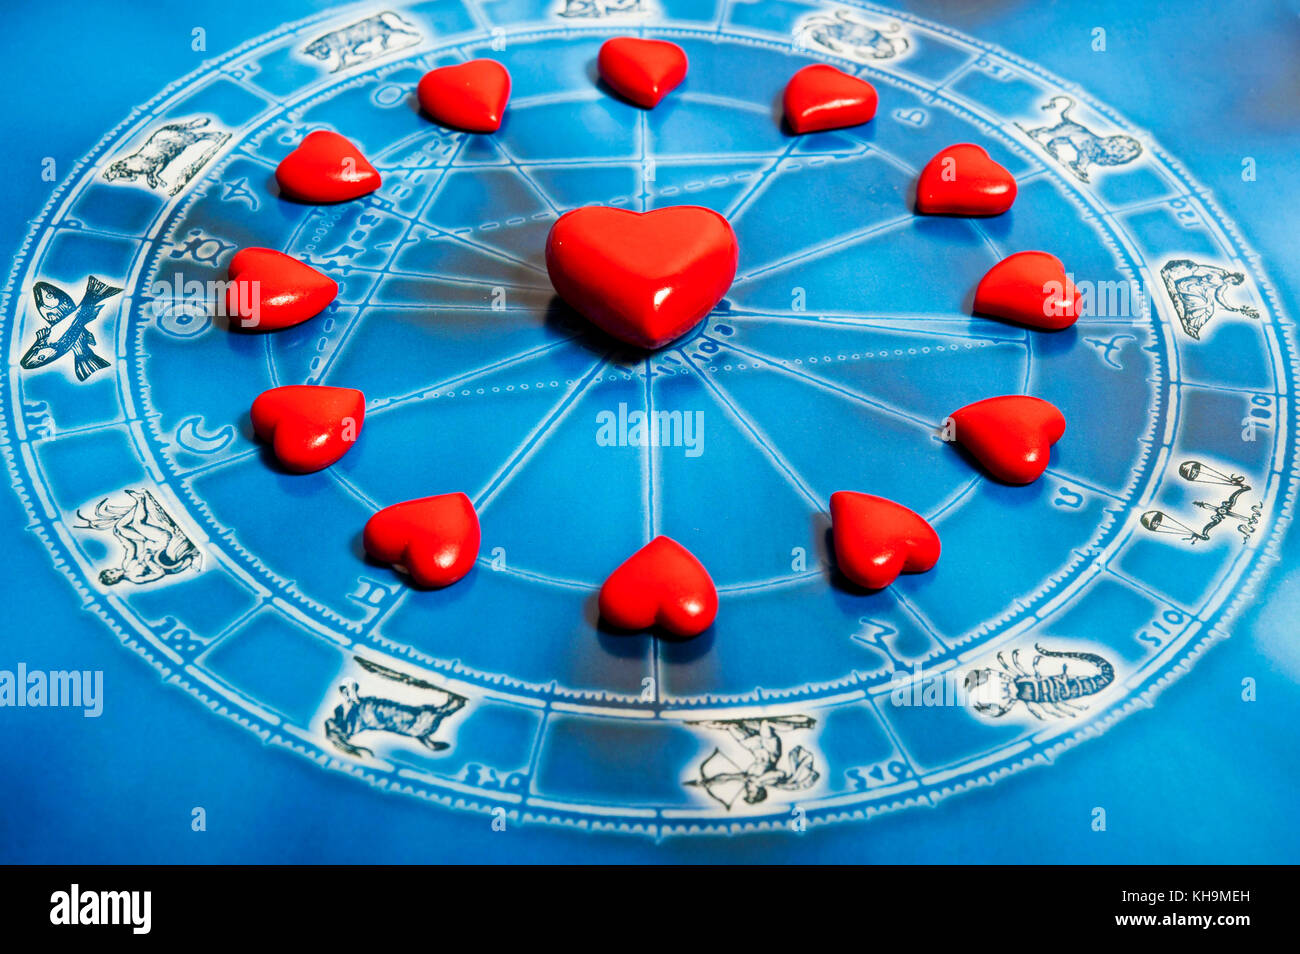 astrology chart with all zodiac signs and hearts, love for astrology concept - Stock Image